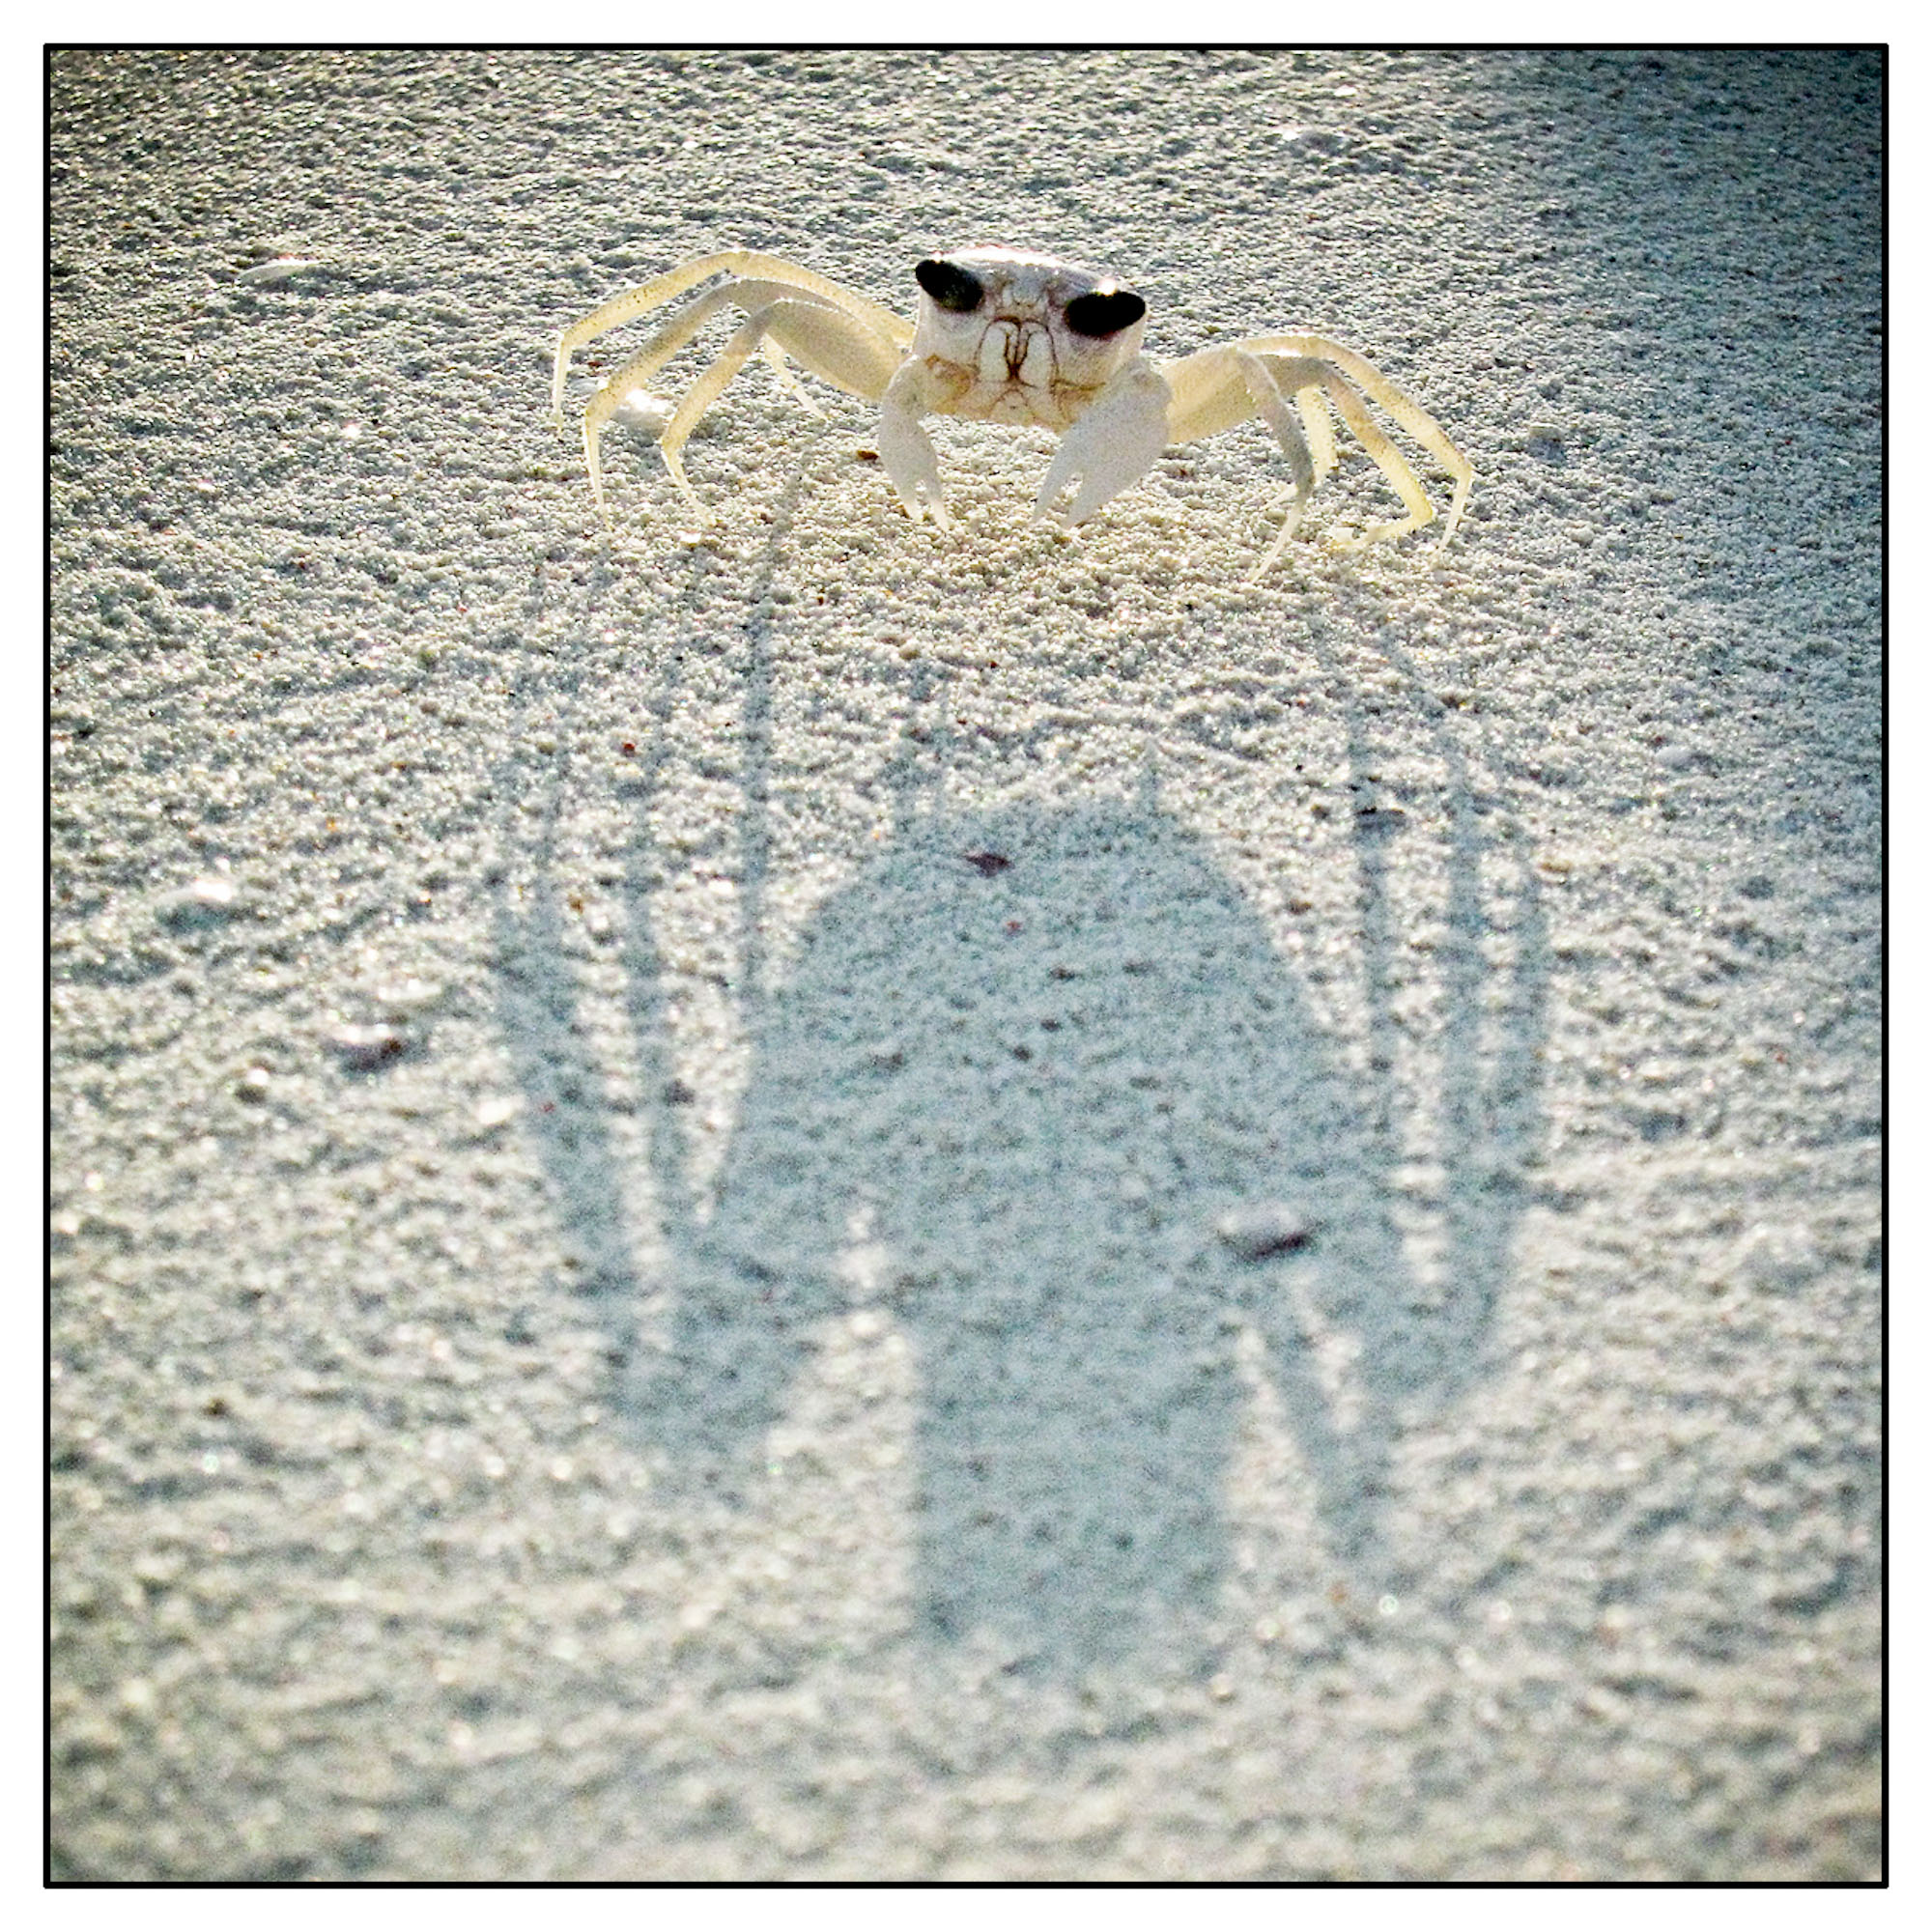 Ghost crab in the early morning light